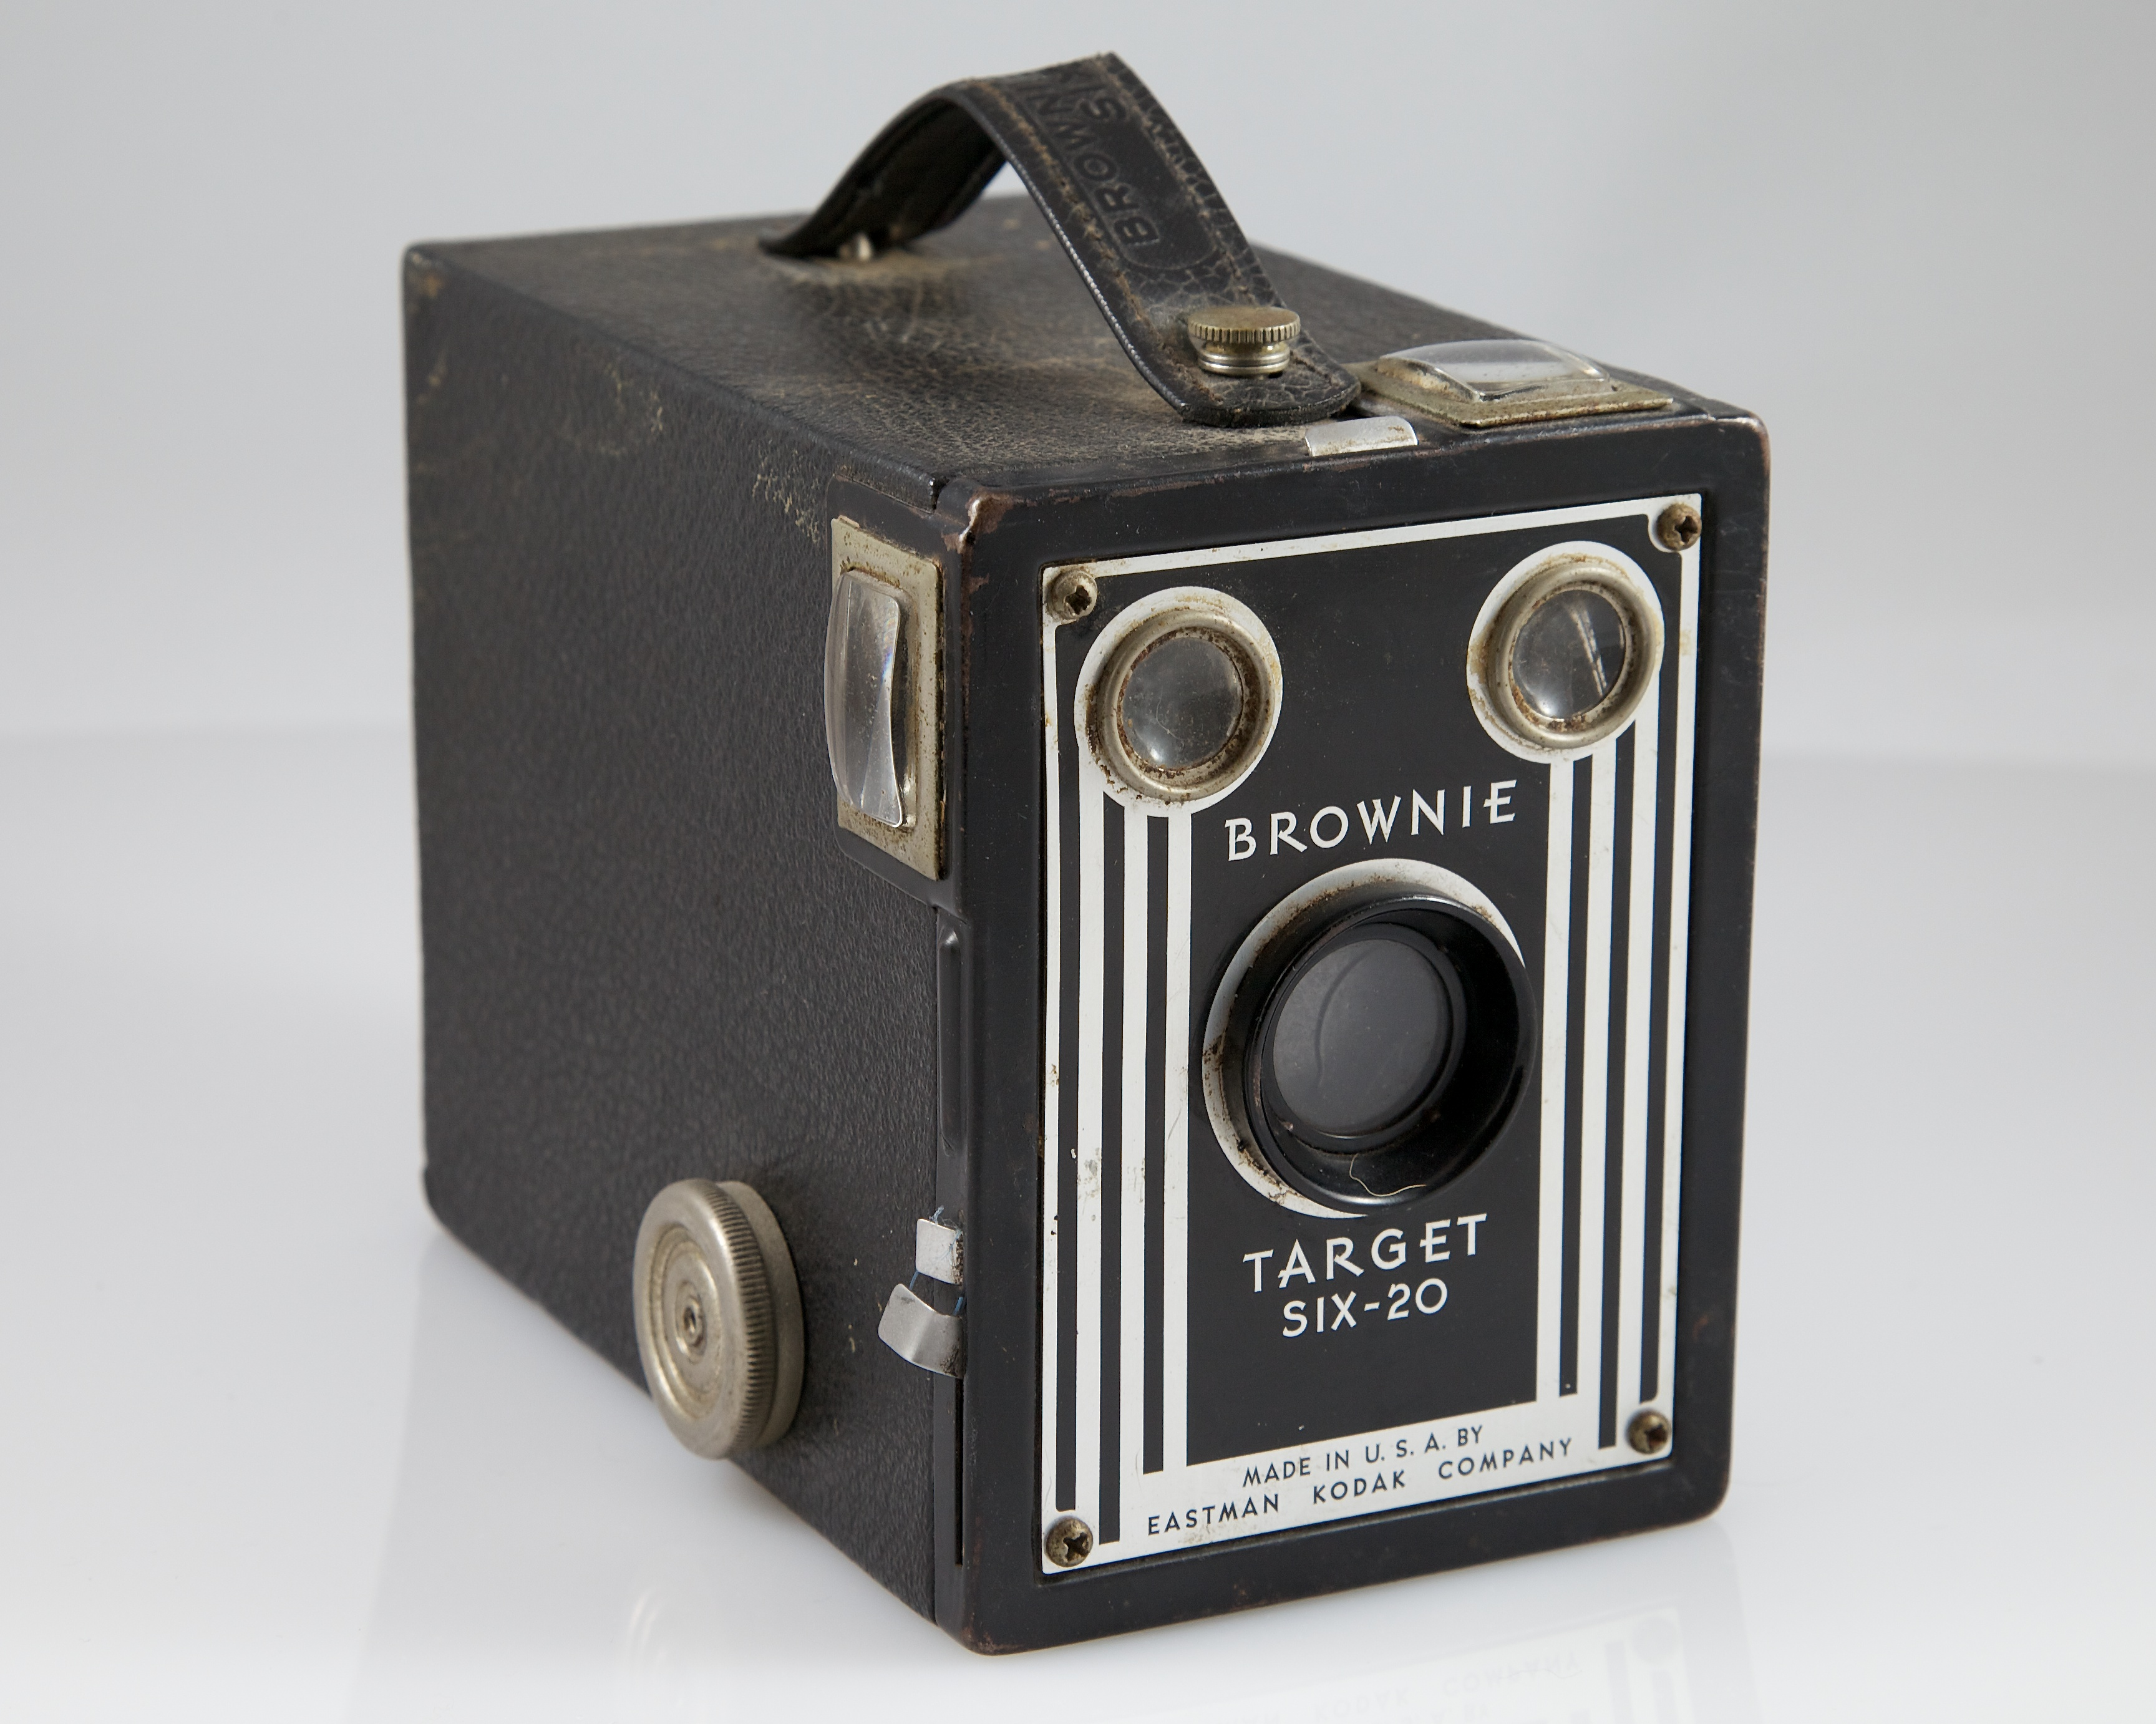 It all started with a Kodak Brownie